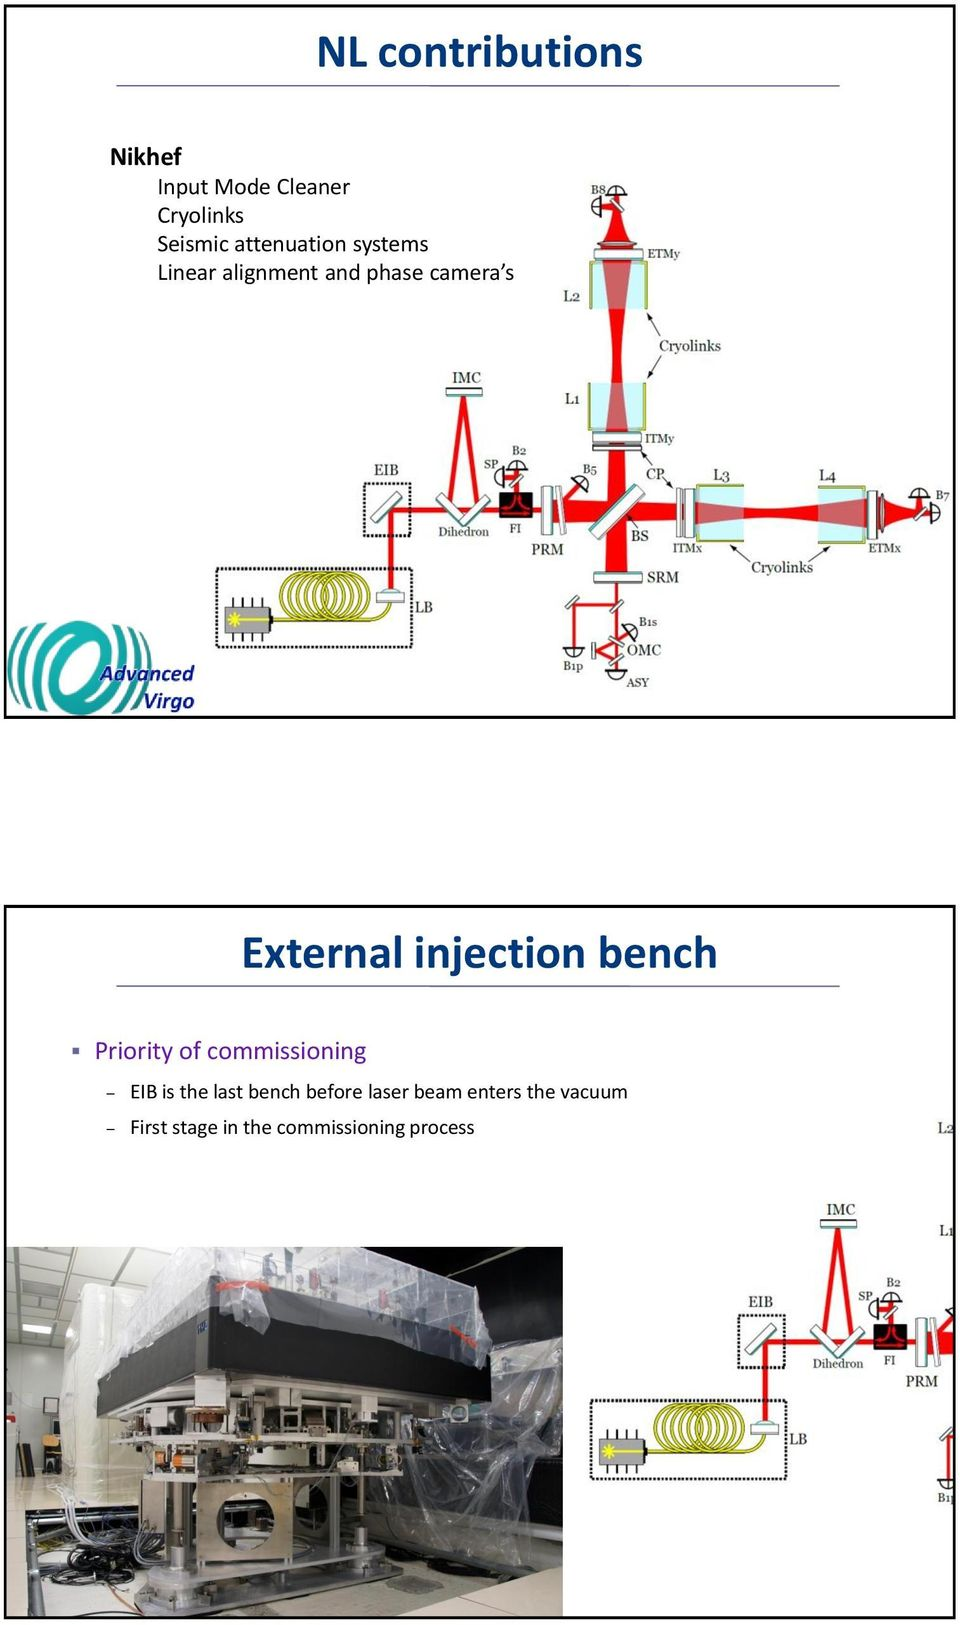 injection bench Priority of commissioning EIB is the last bench